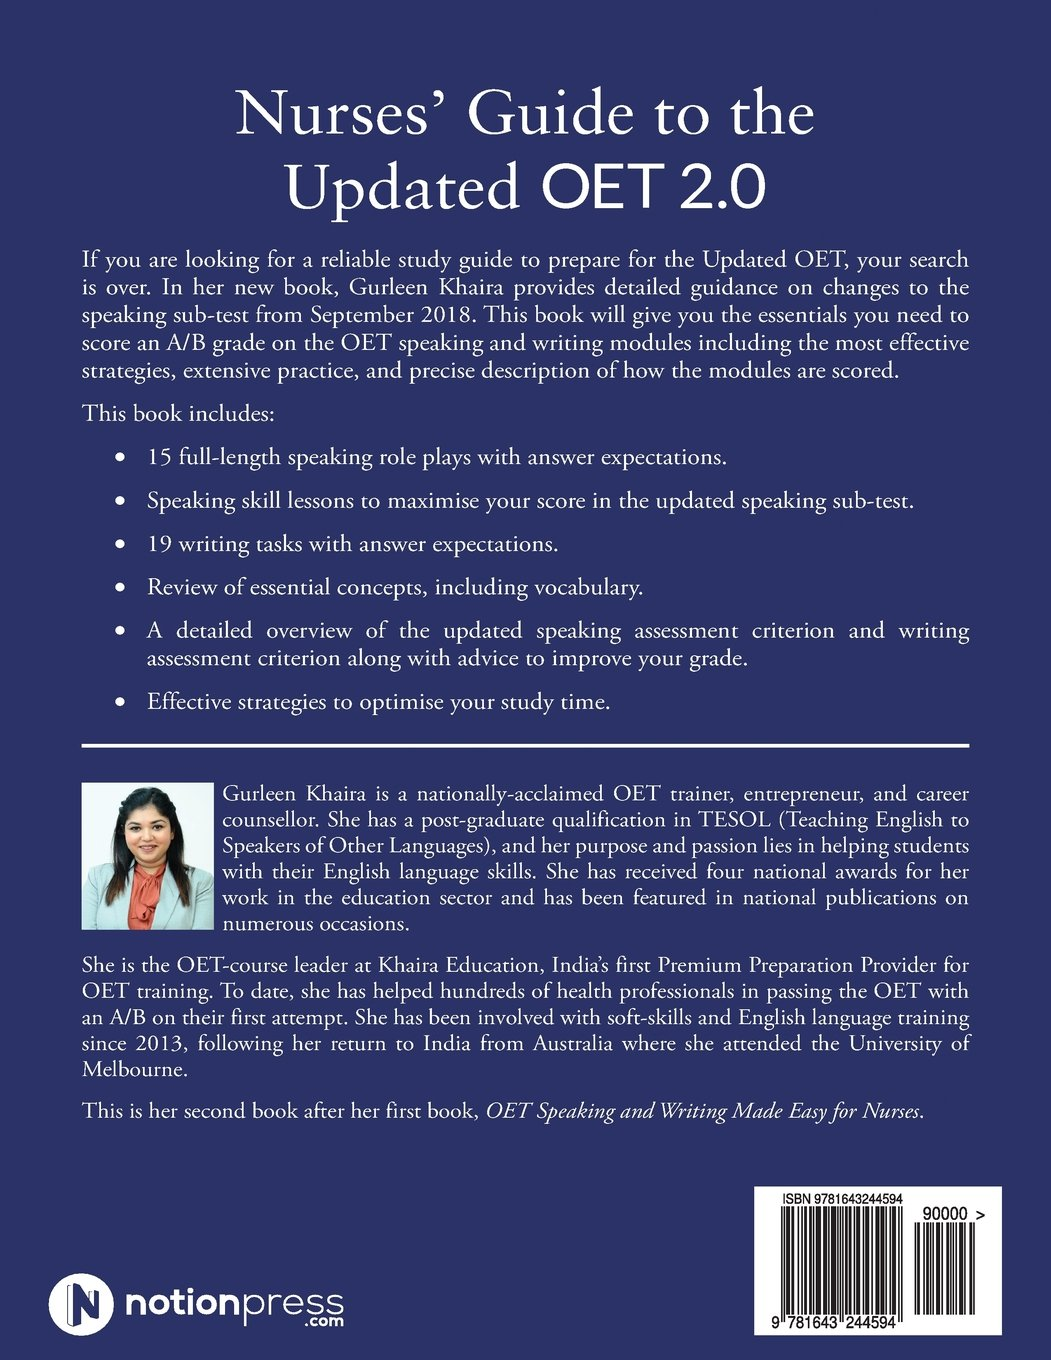 Buy Nurses' Guide to the Updated Oet 2 0: Speaking and